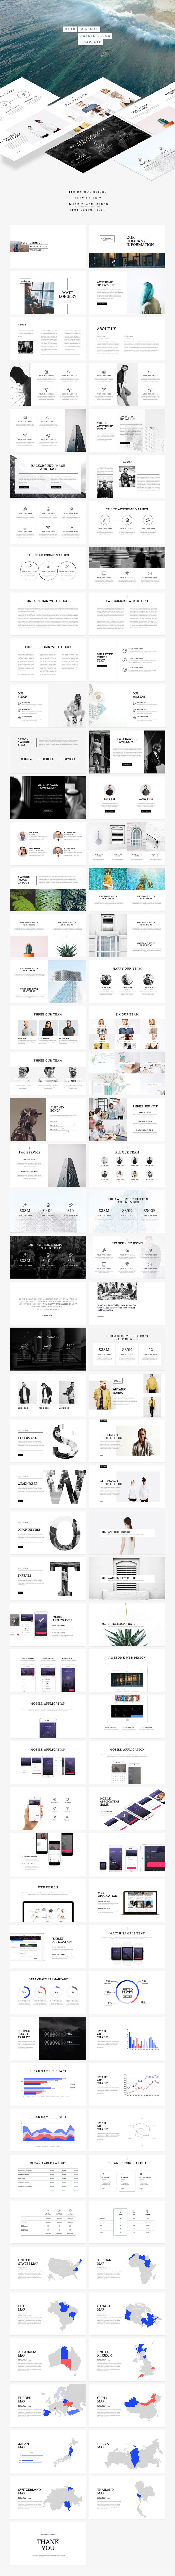 Slab-Minimal Keynote Template by Dublin_Design on @creativemarket